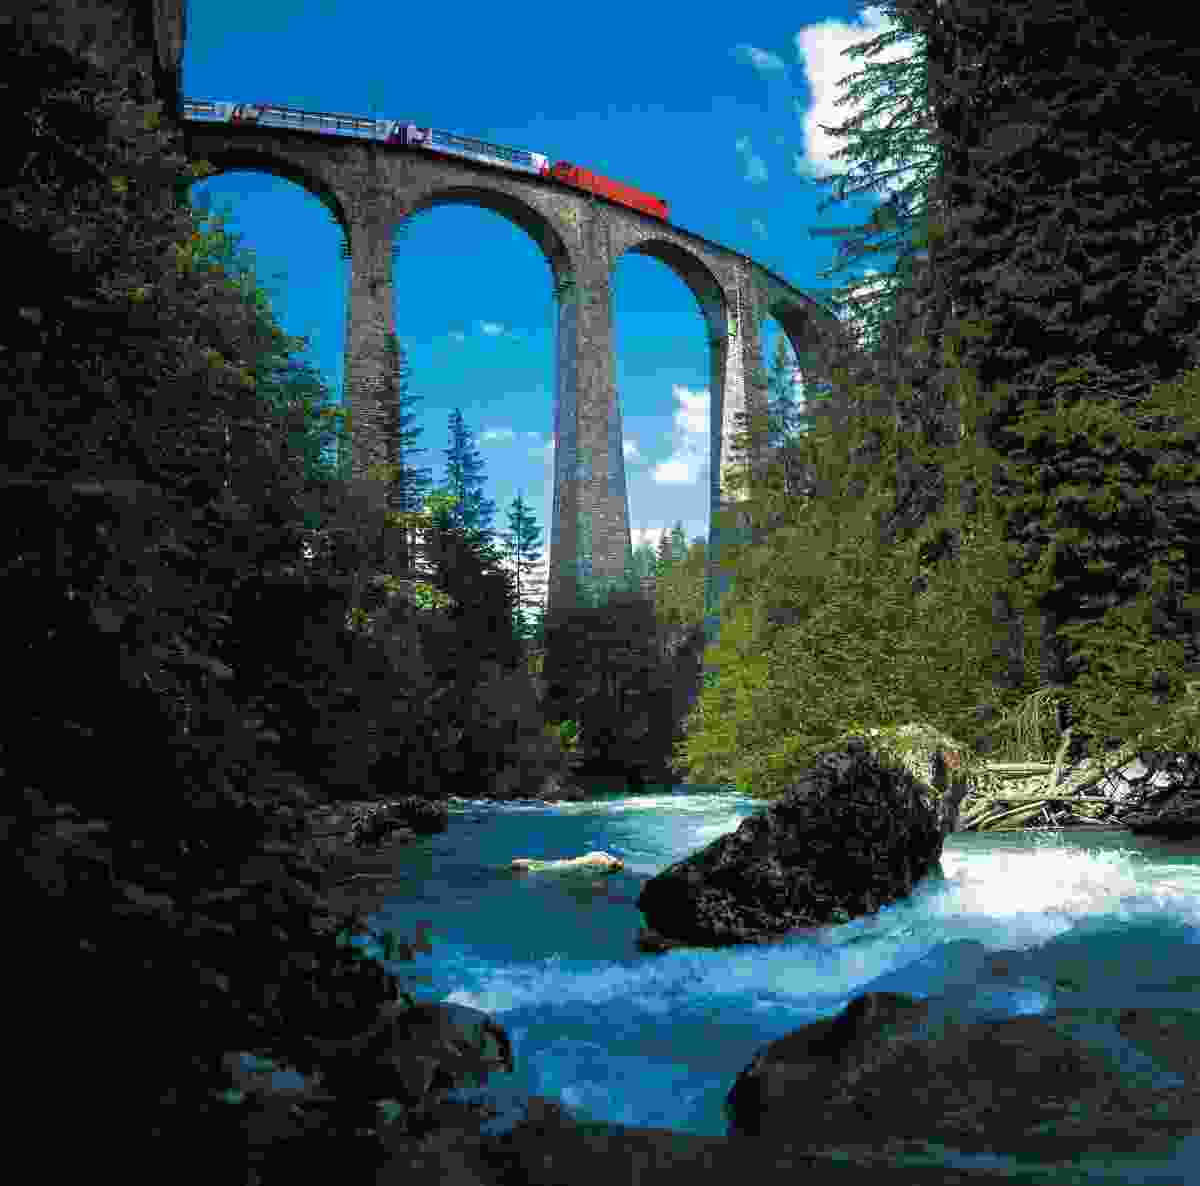 The Glacier Express on the Landwasser viaduct (Switzerland Tourism)